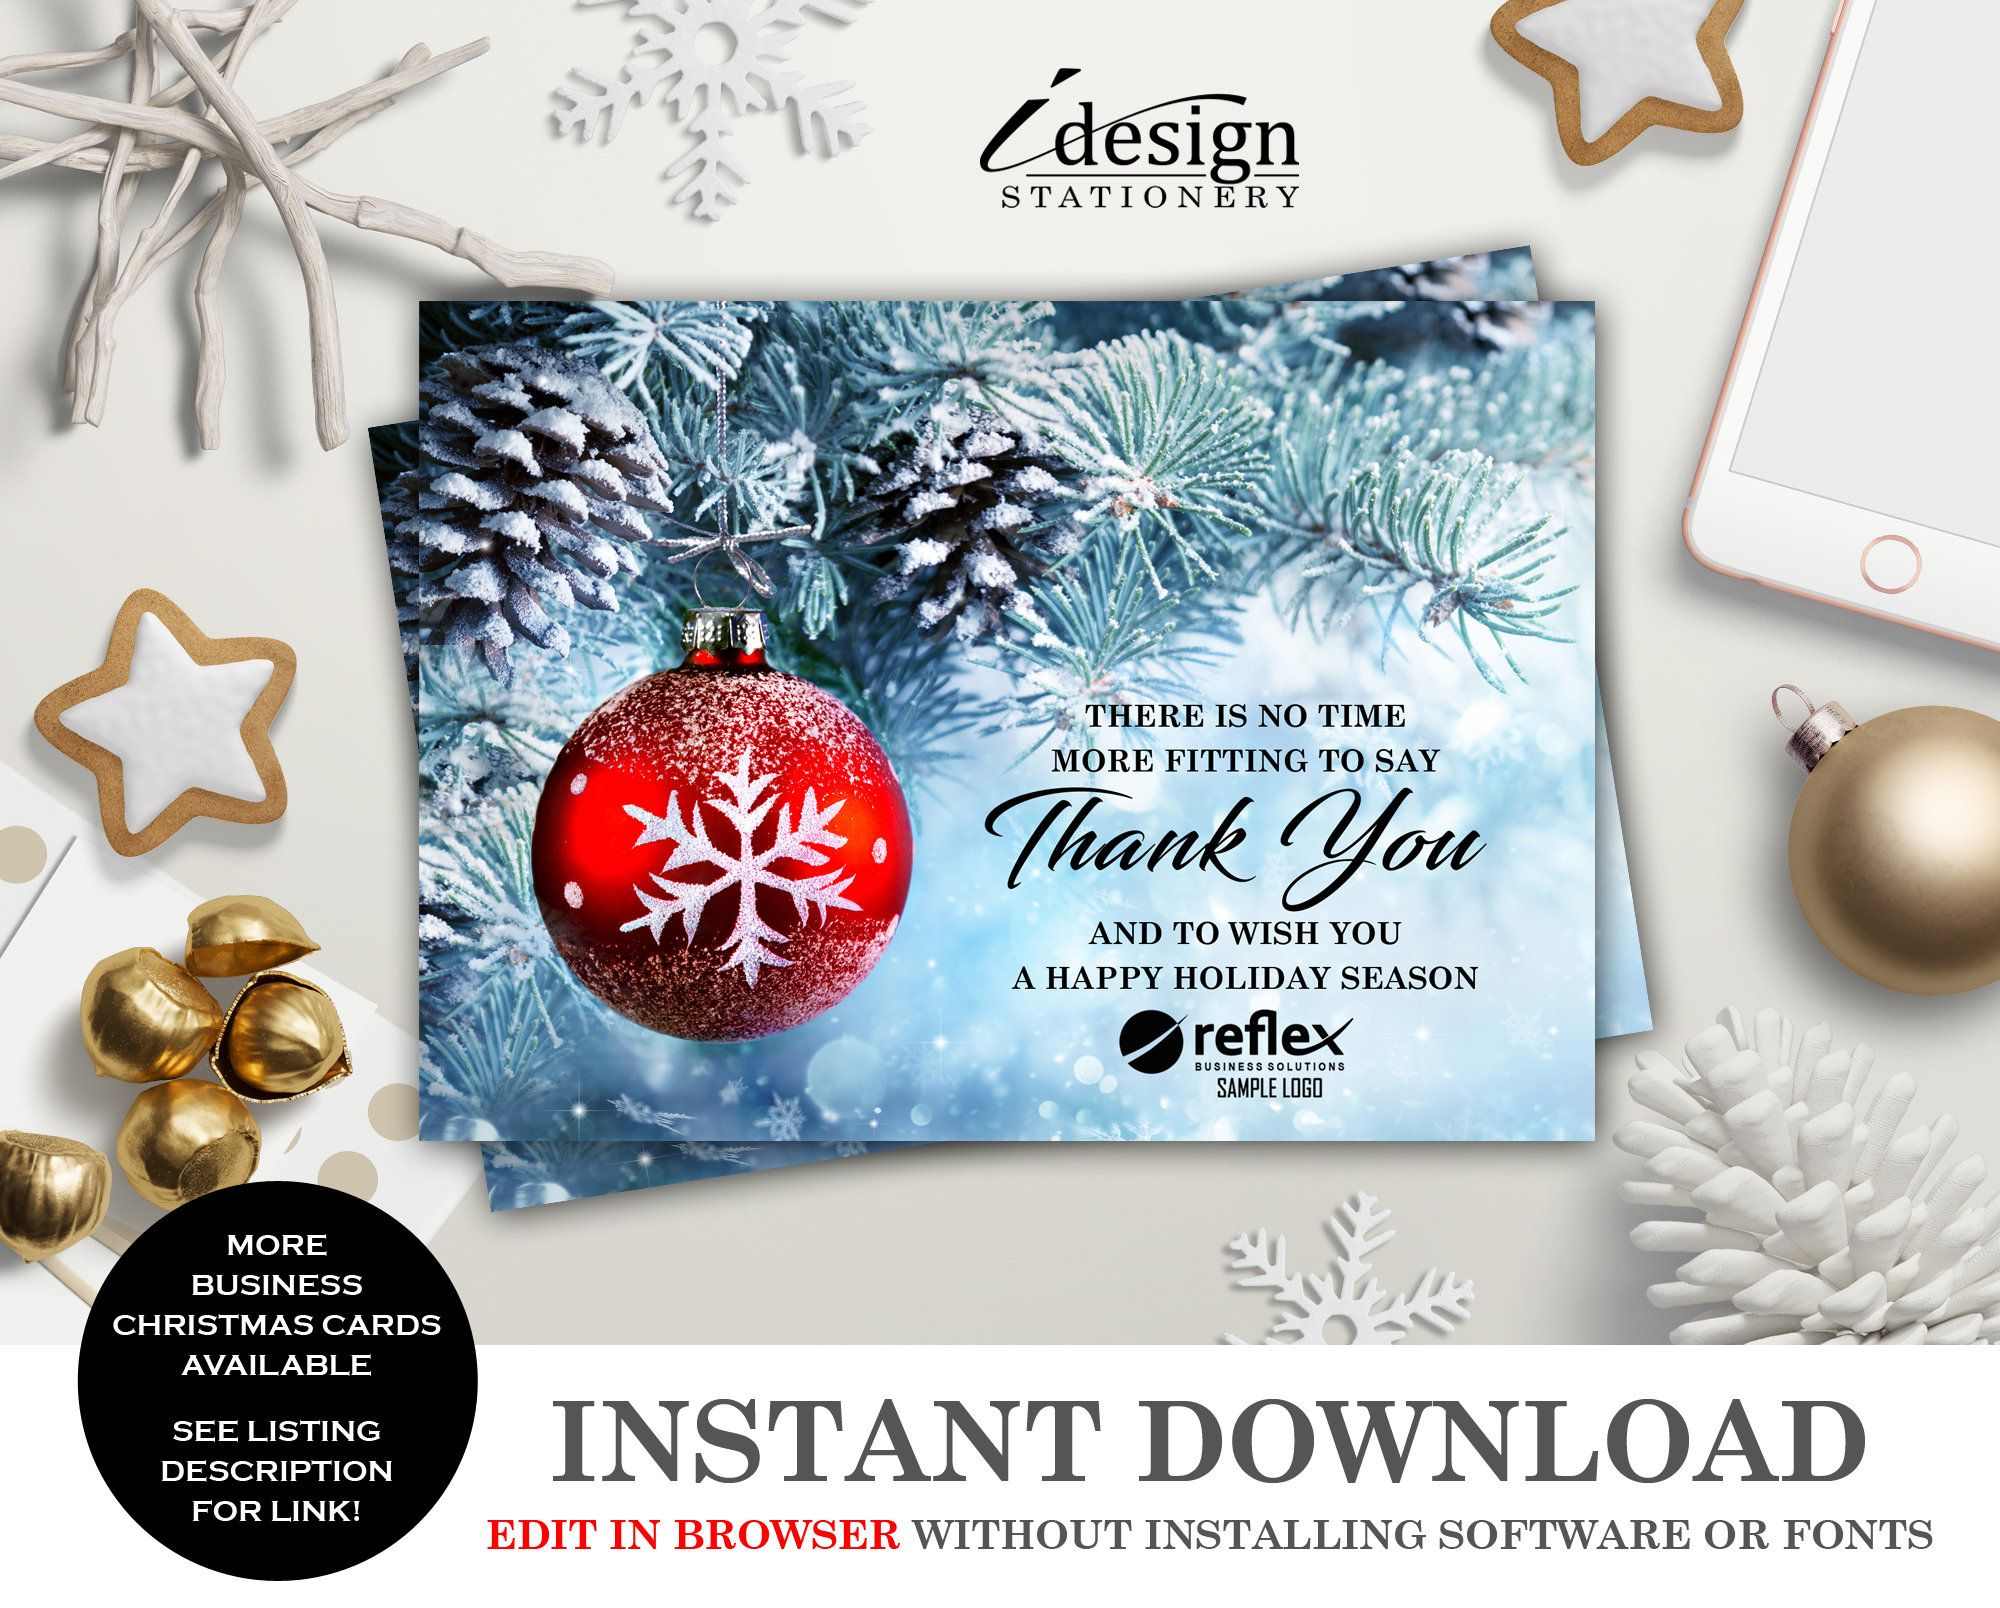 Corporate Christmas Card With Logo Business Holiday Thank You Cards Instant Down Business Christmas Cards Corporate Holiday Cards Corporate Christmas Cards